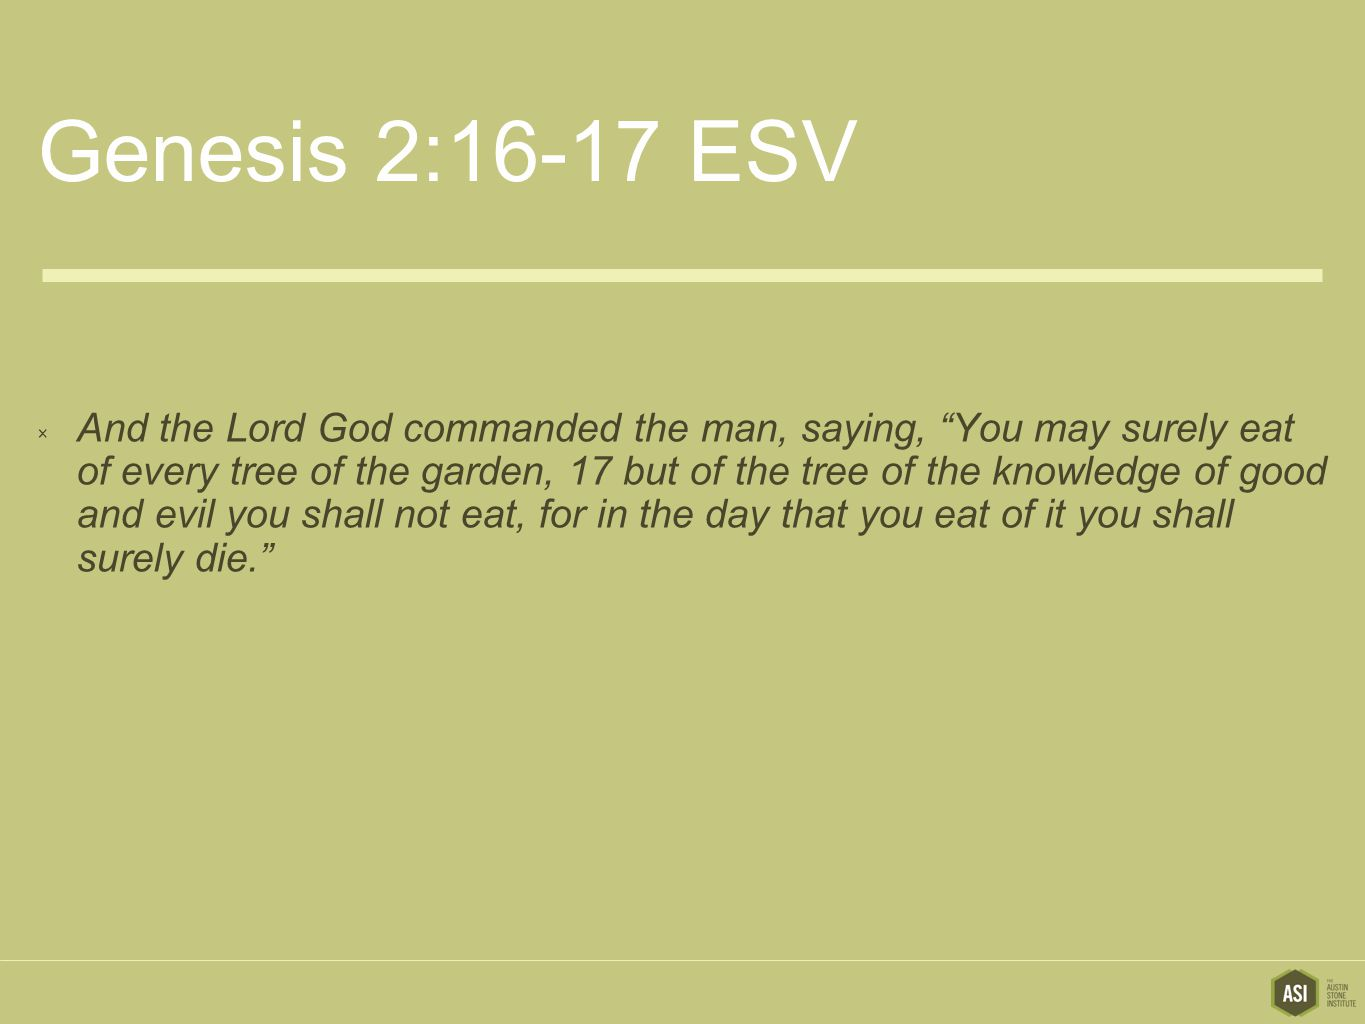 Genesis 2:16-17 ESV  And the Lord God commanded the man, saying, You may surely eat of every tree of the garden, 17 but of the tree of the knowledge of good and evil you shall not eat, for in the day that you eat of it you shall surely die.